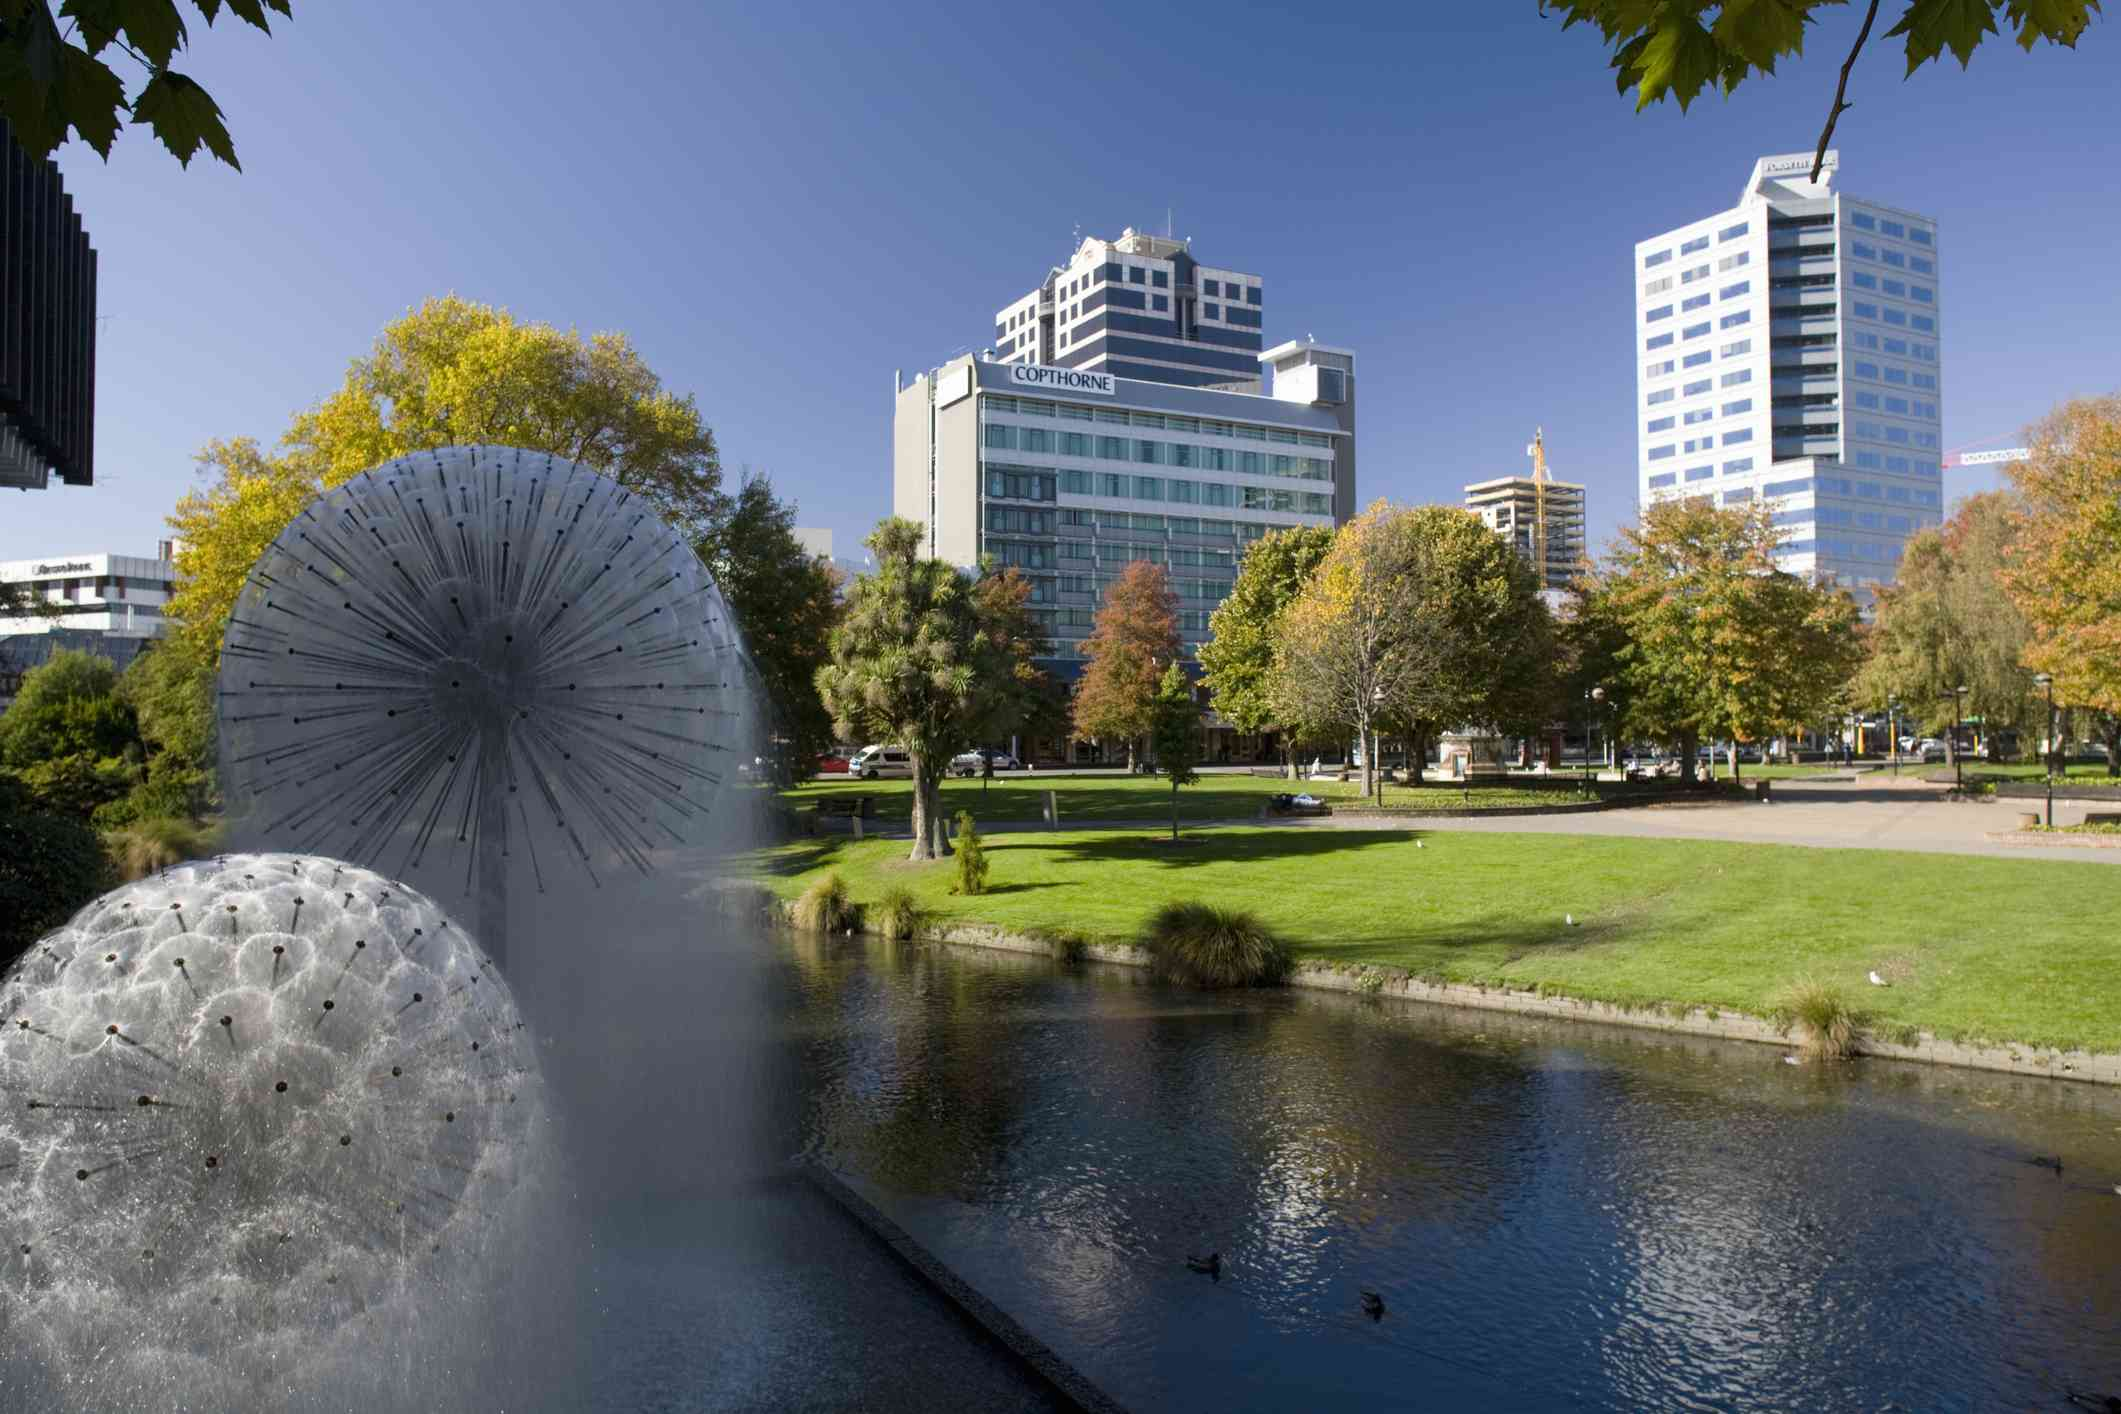 fountains in a riverside park with tall buildings behind